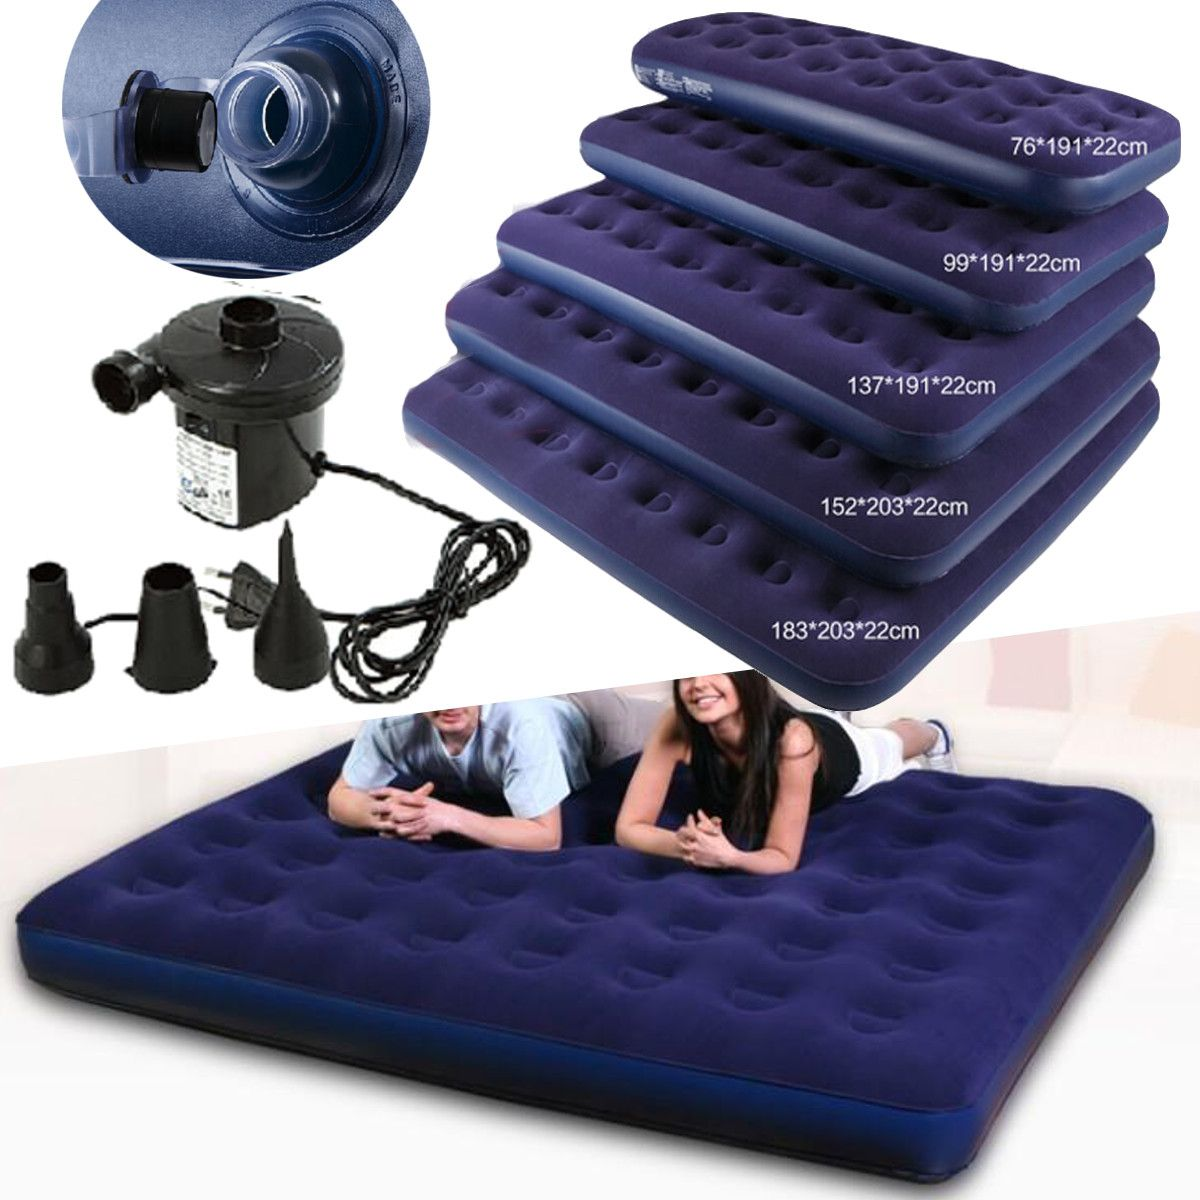 Moaere Inflatable Travel Car Air Bed Sleeping Mattress Couch Sofa Camping Seat Pump Set Air Bed Sleeping Mattress Couch Air Bed Sofa Couch